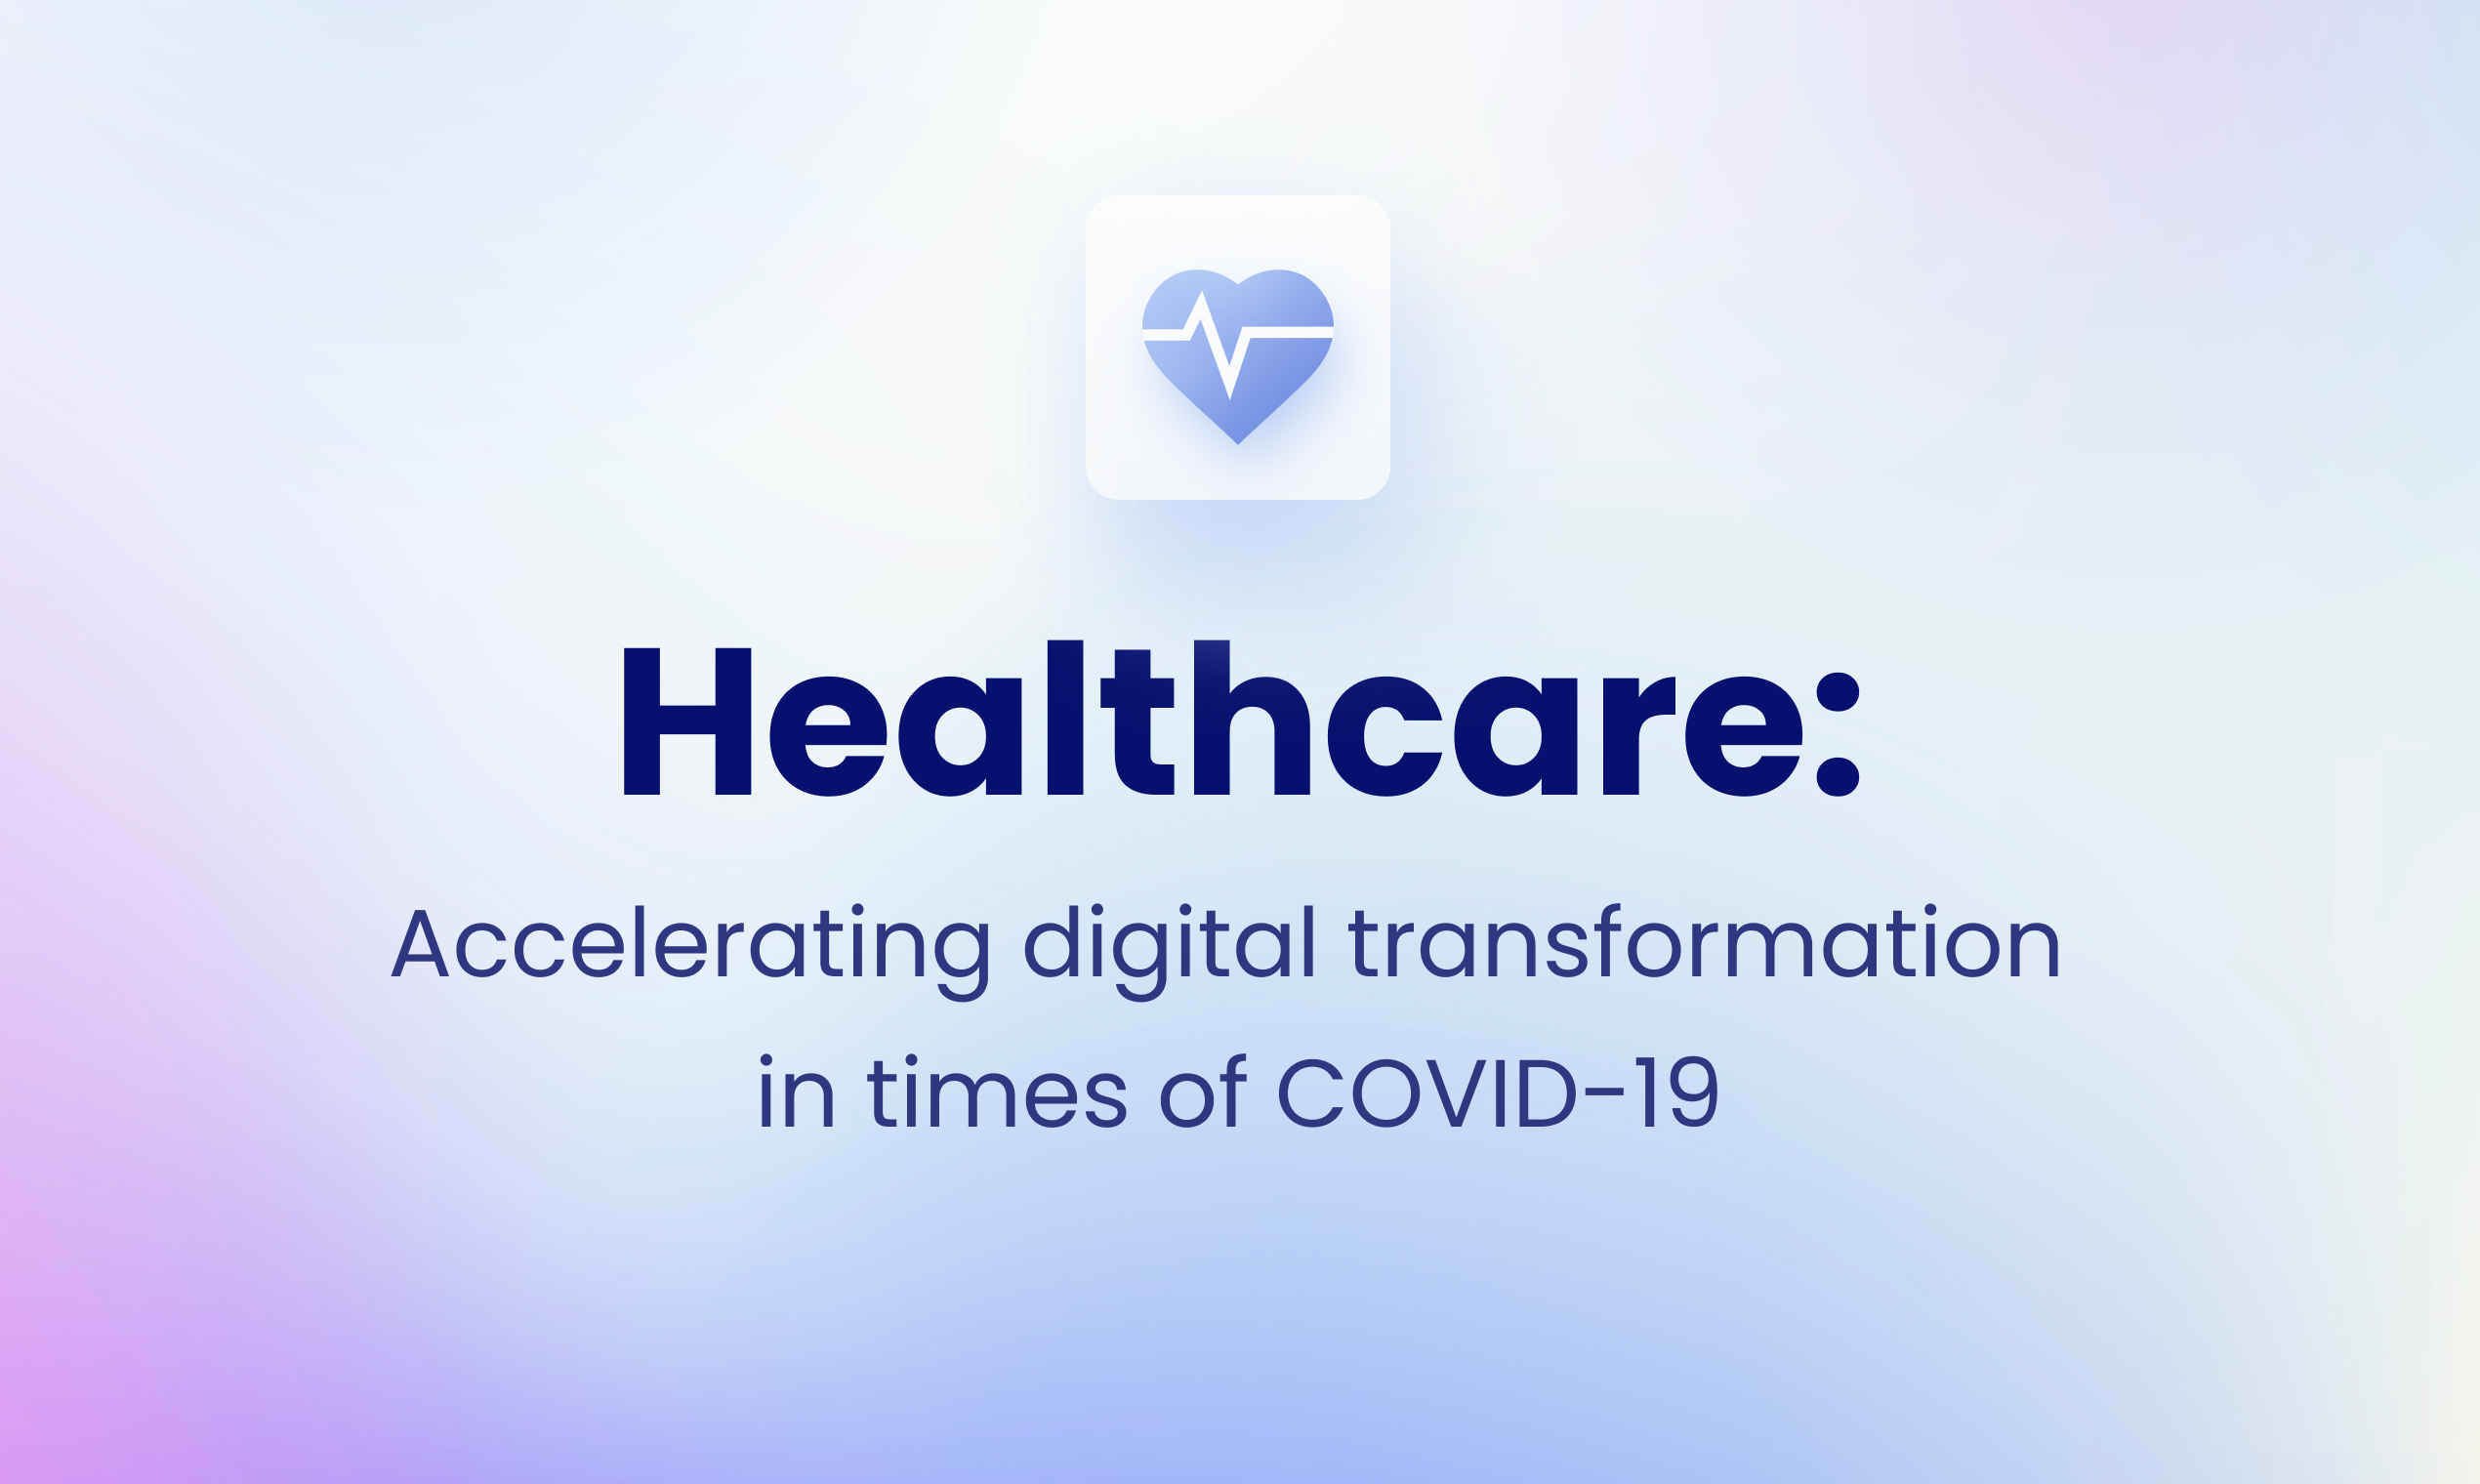 Healthcare: accelerating digital transformation in times of COVID-19